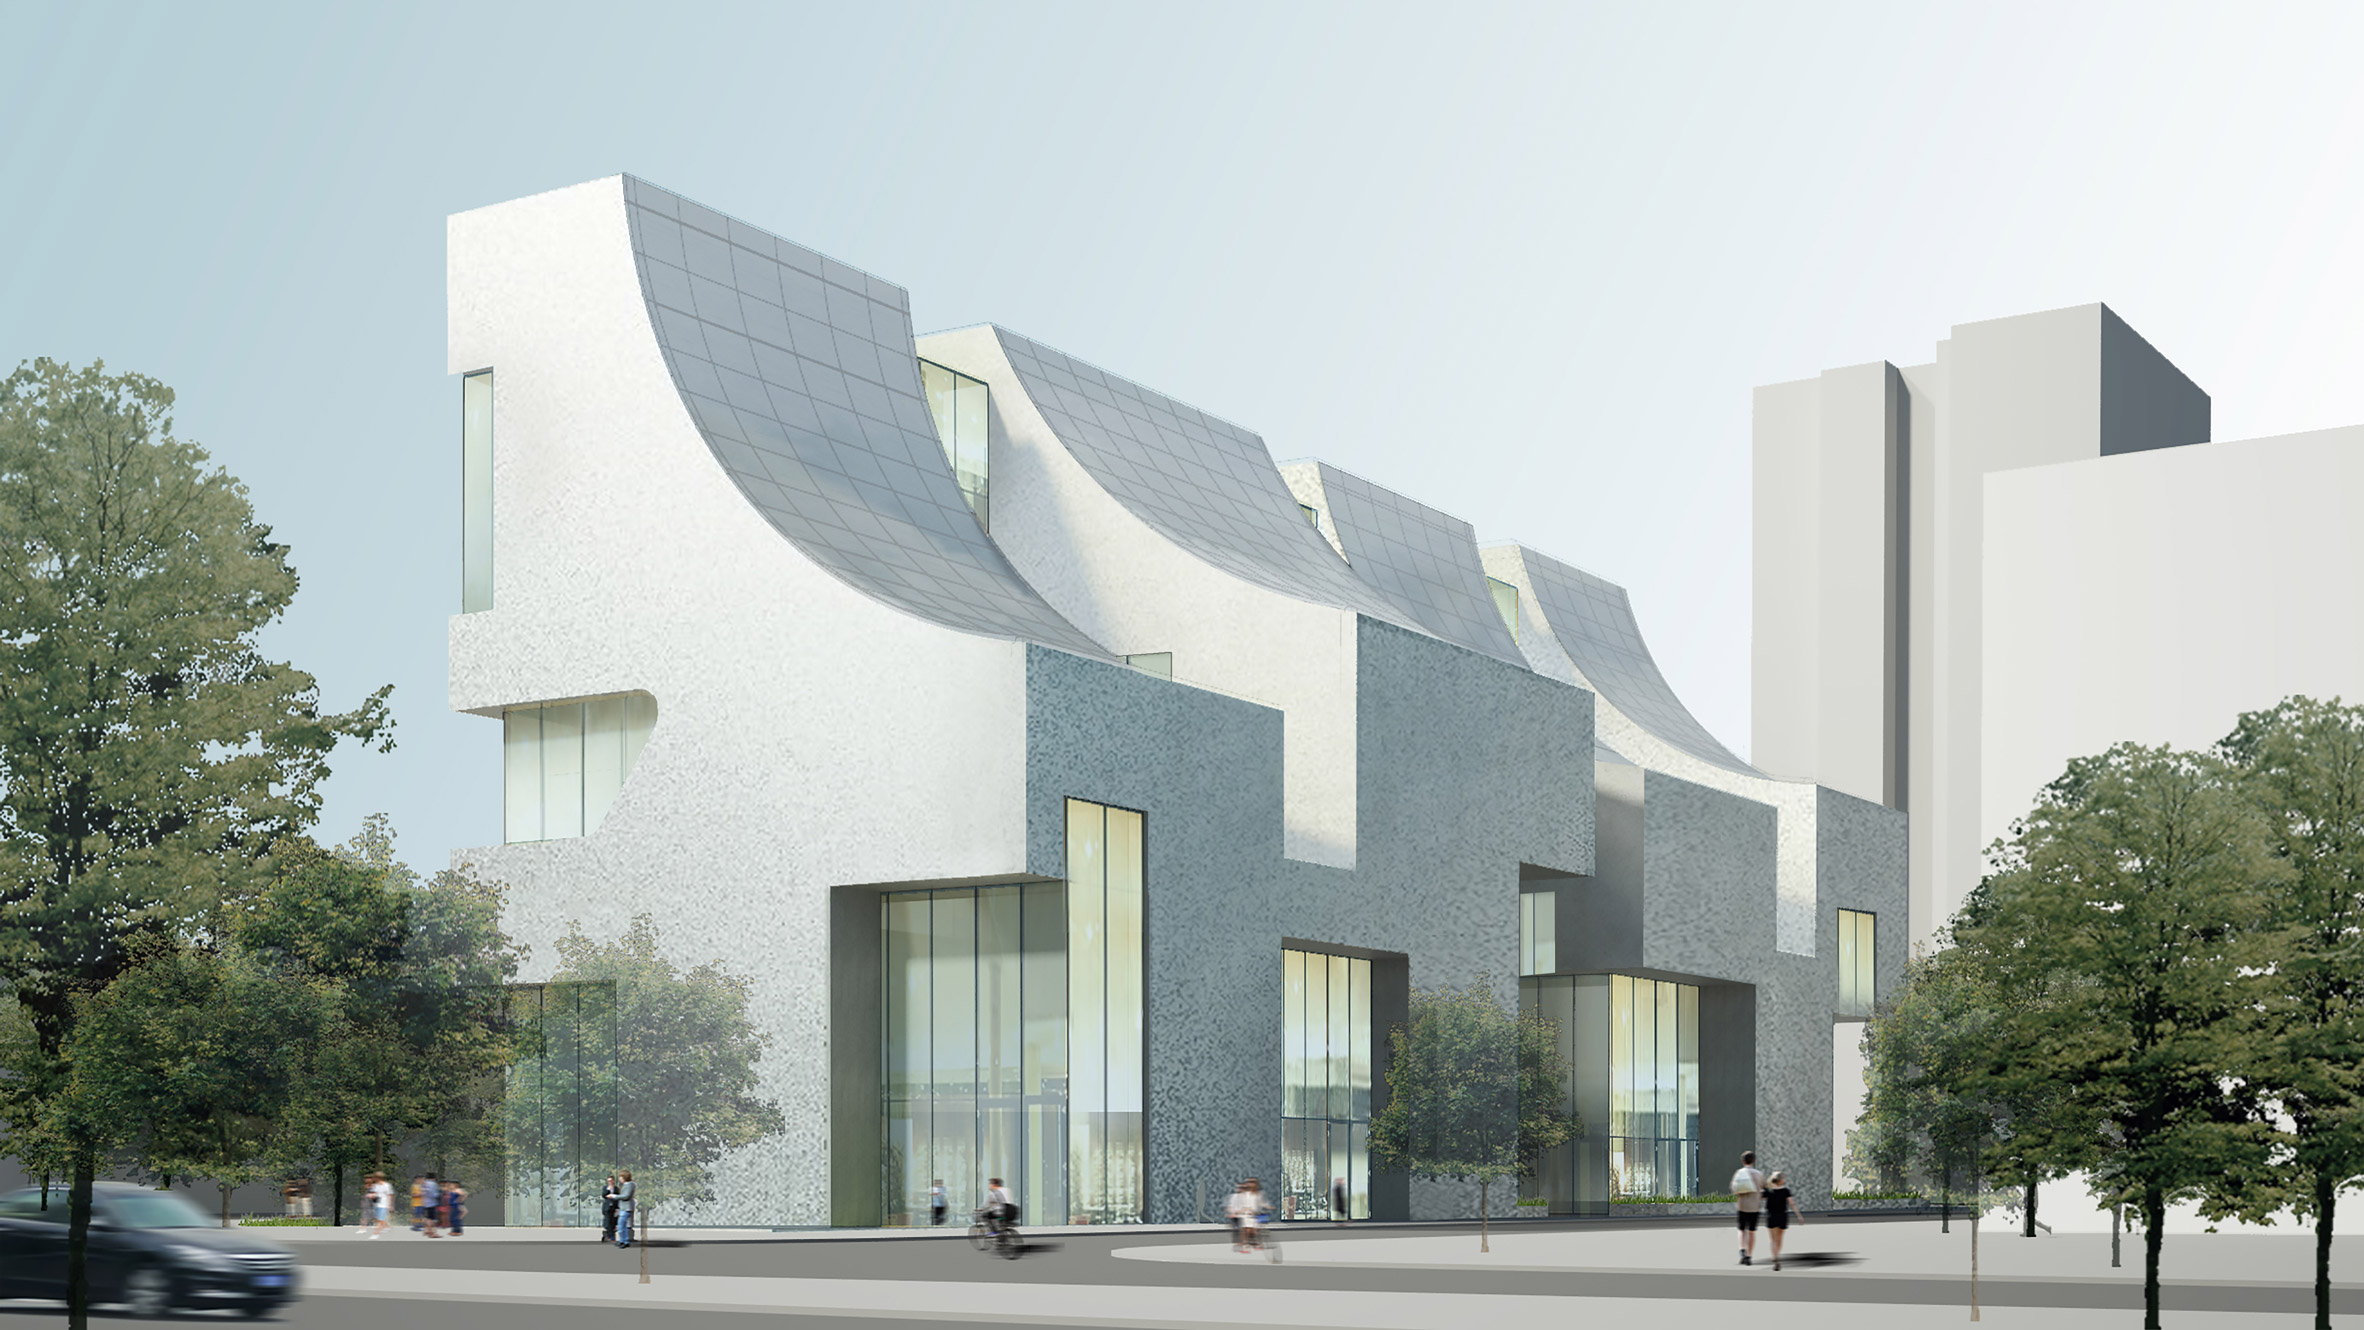 Steven Holl Architects Designs Cifi Building In Beijing With